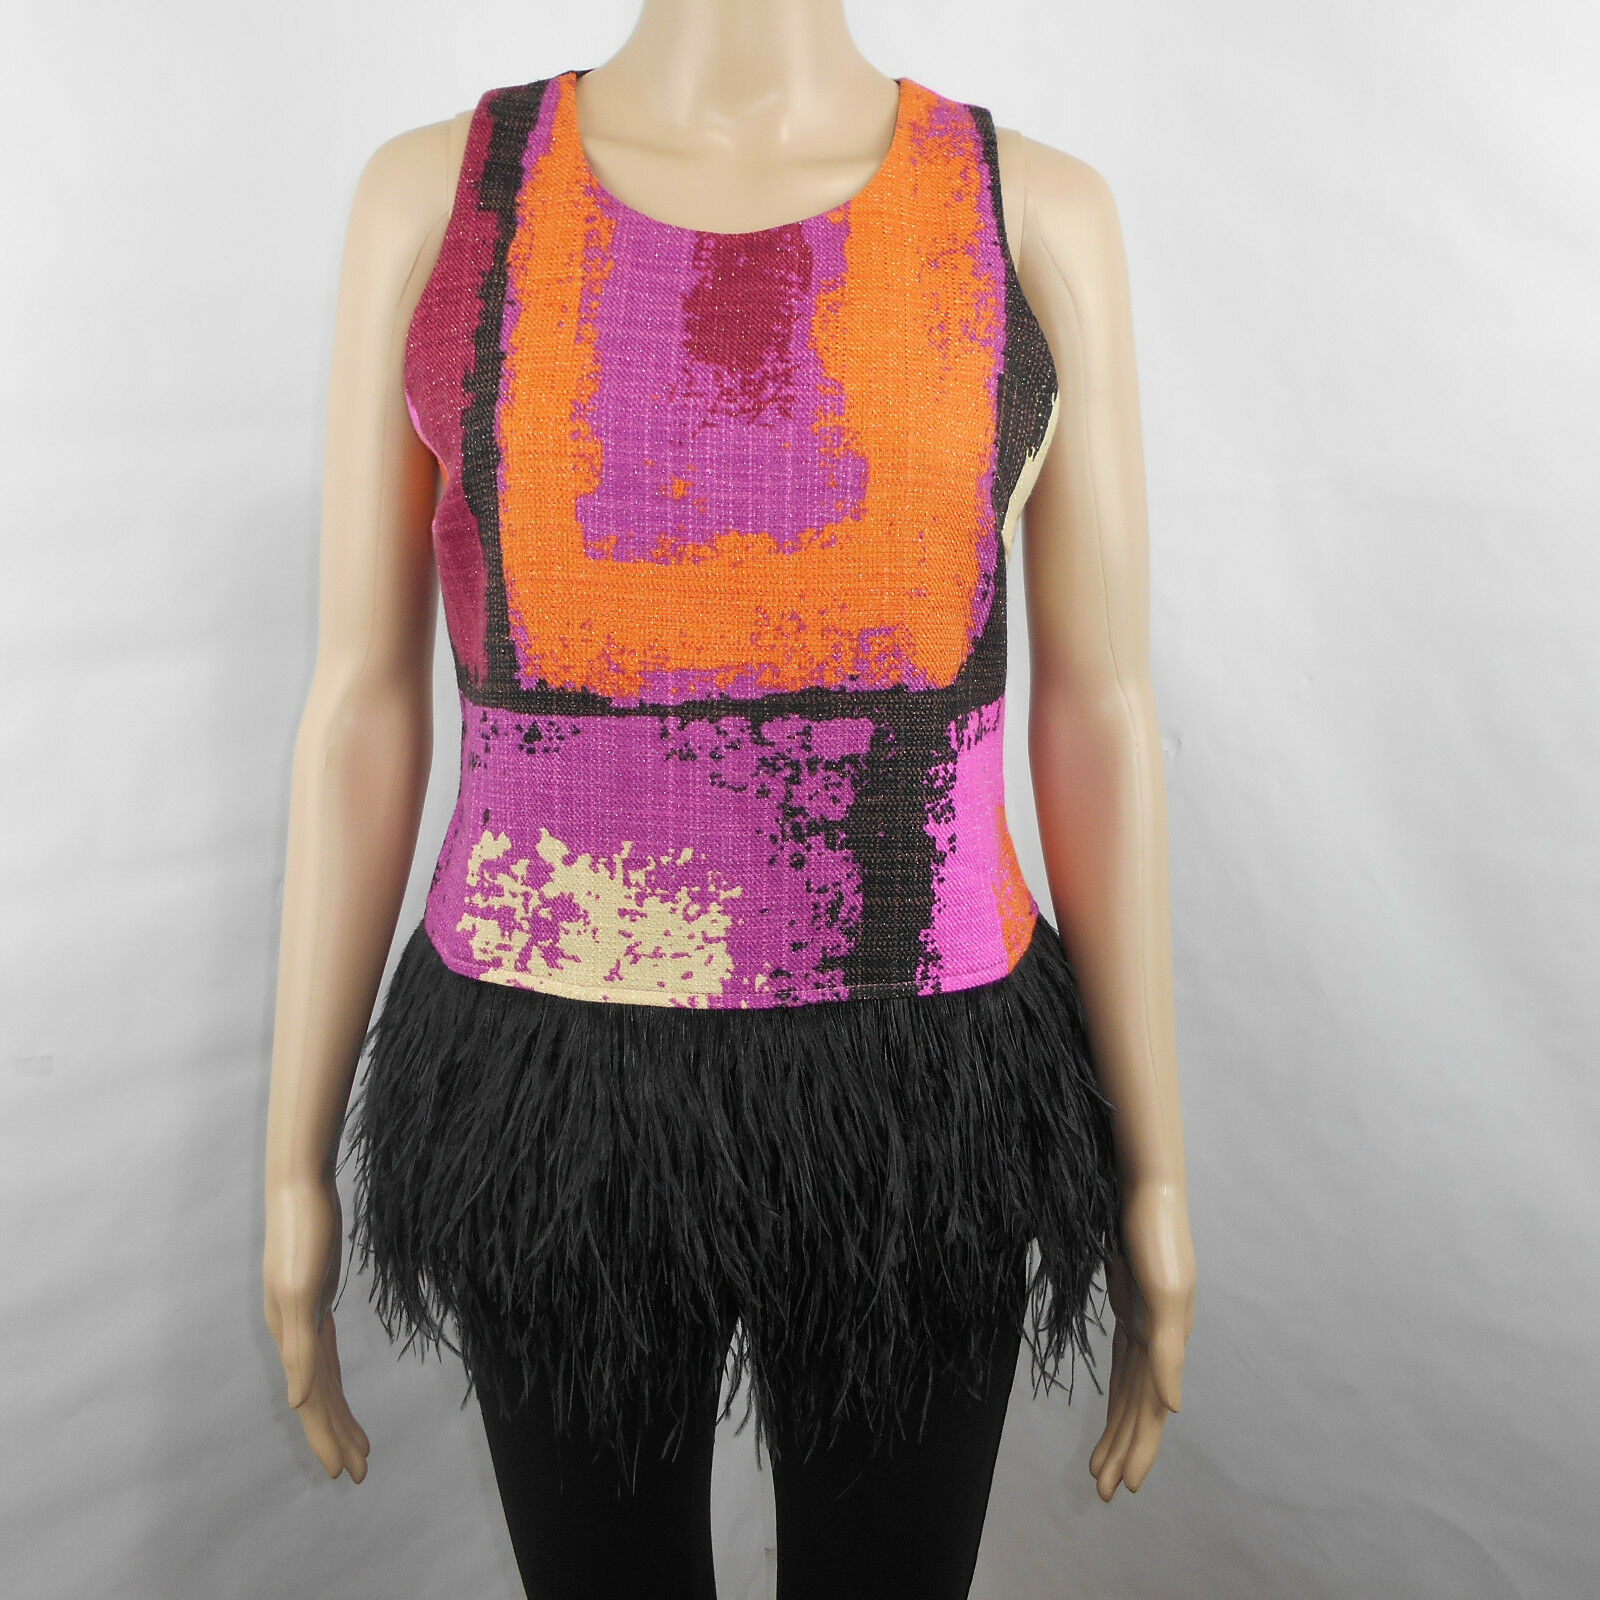 Julie braun damen Starr Tweed lila Orange schwarz Warhol Feather Trim Top Sz 6